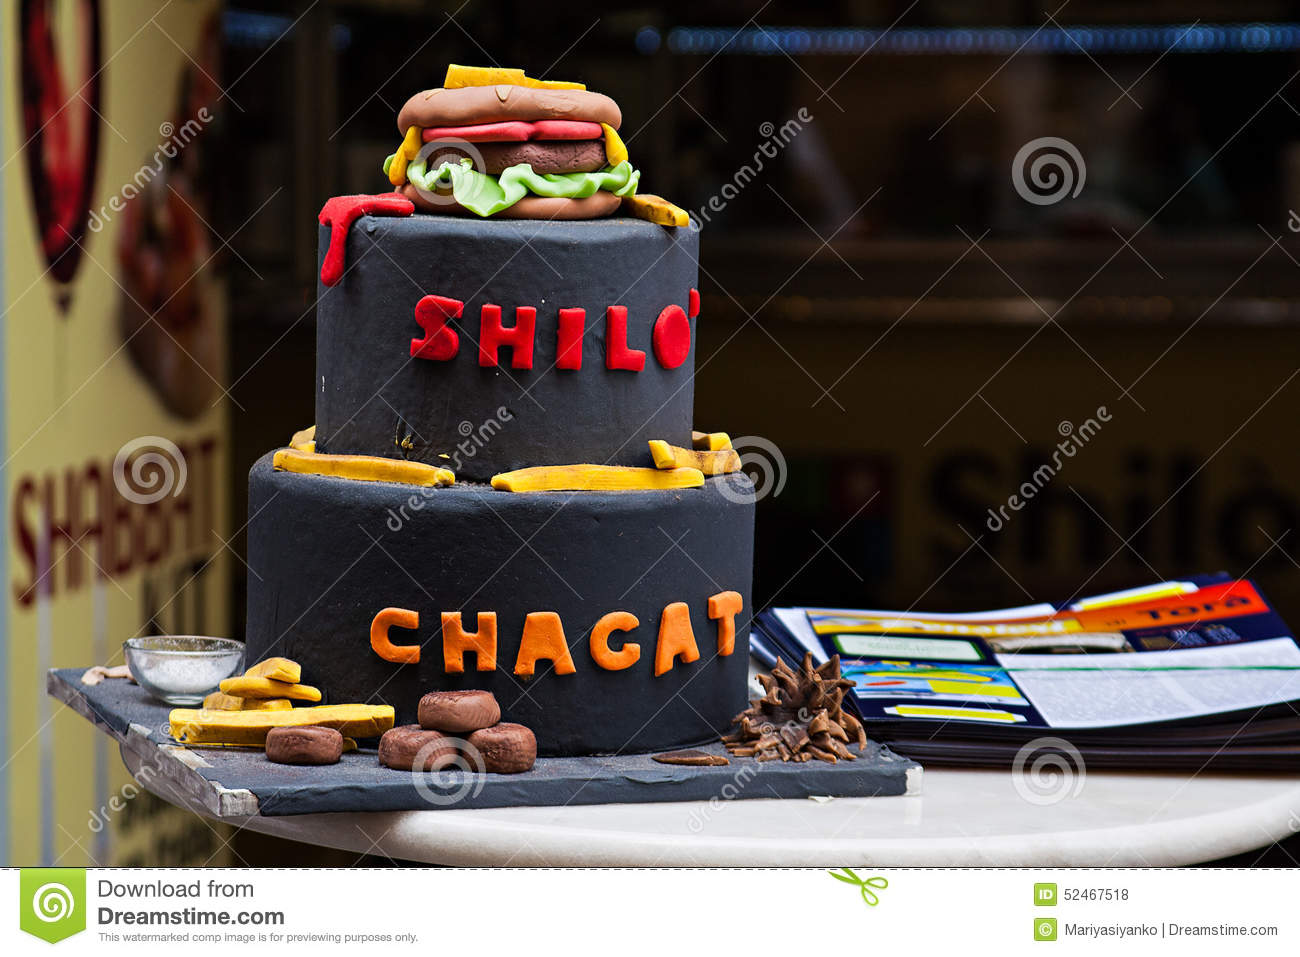 Funny Cake In Jewish Cafe In Ghetto Quarter In Rome Stock Photo Image 5246